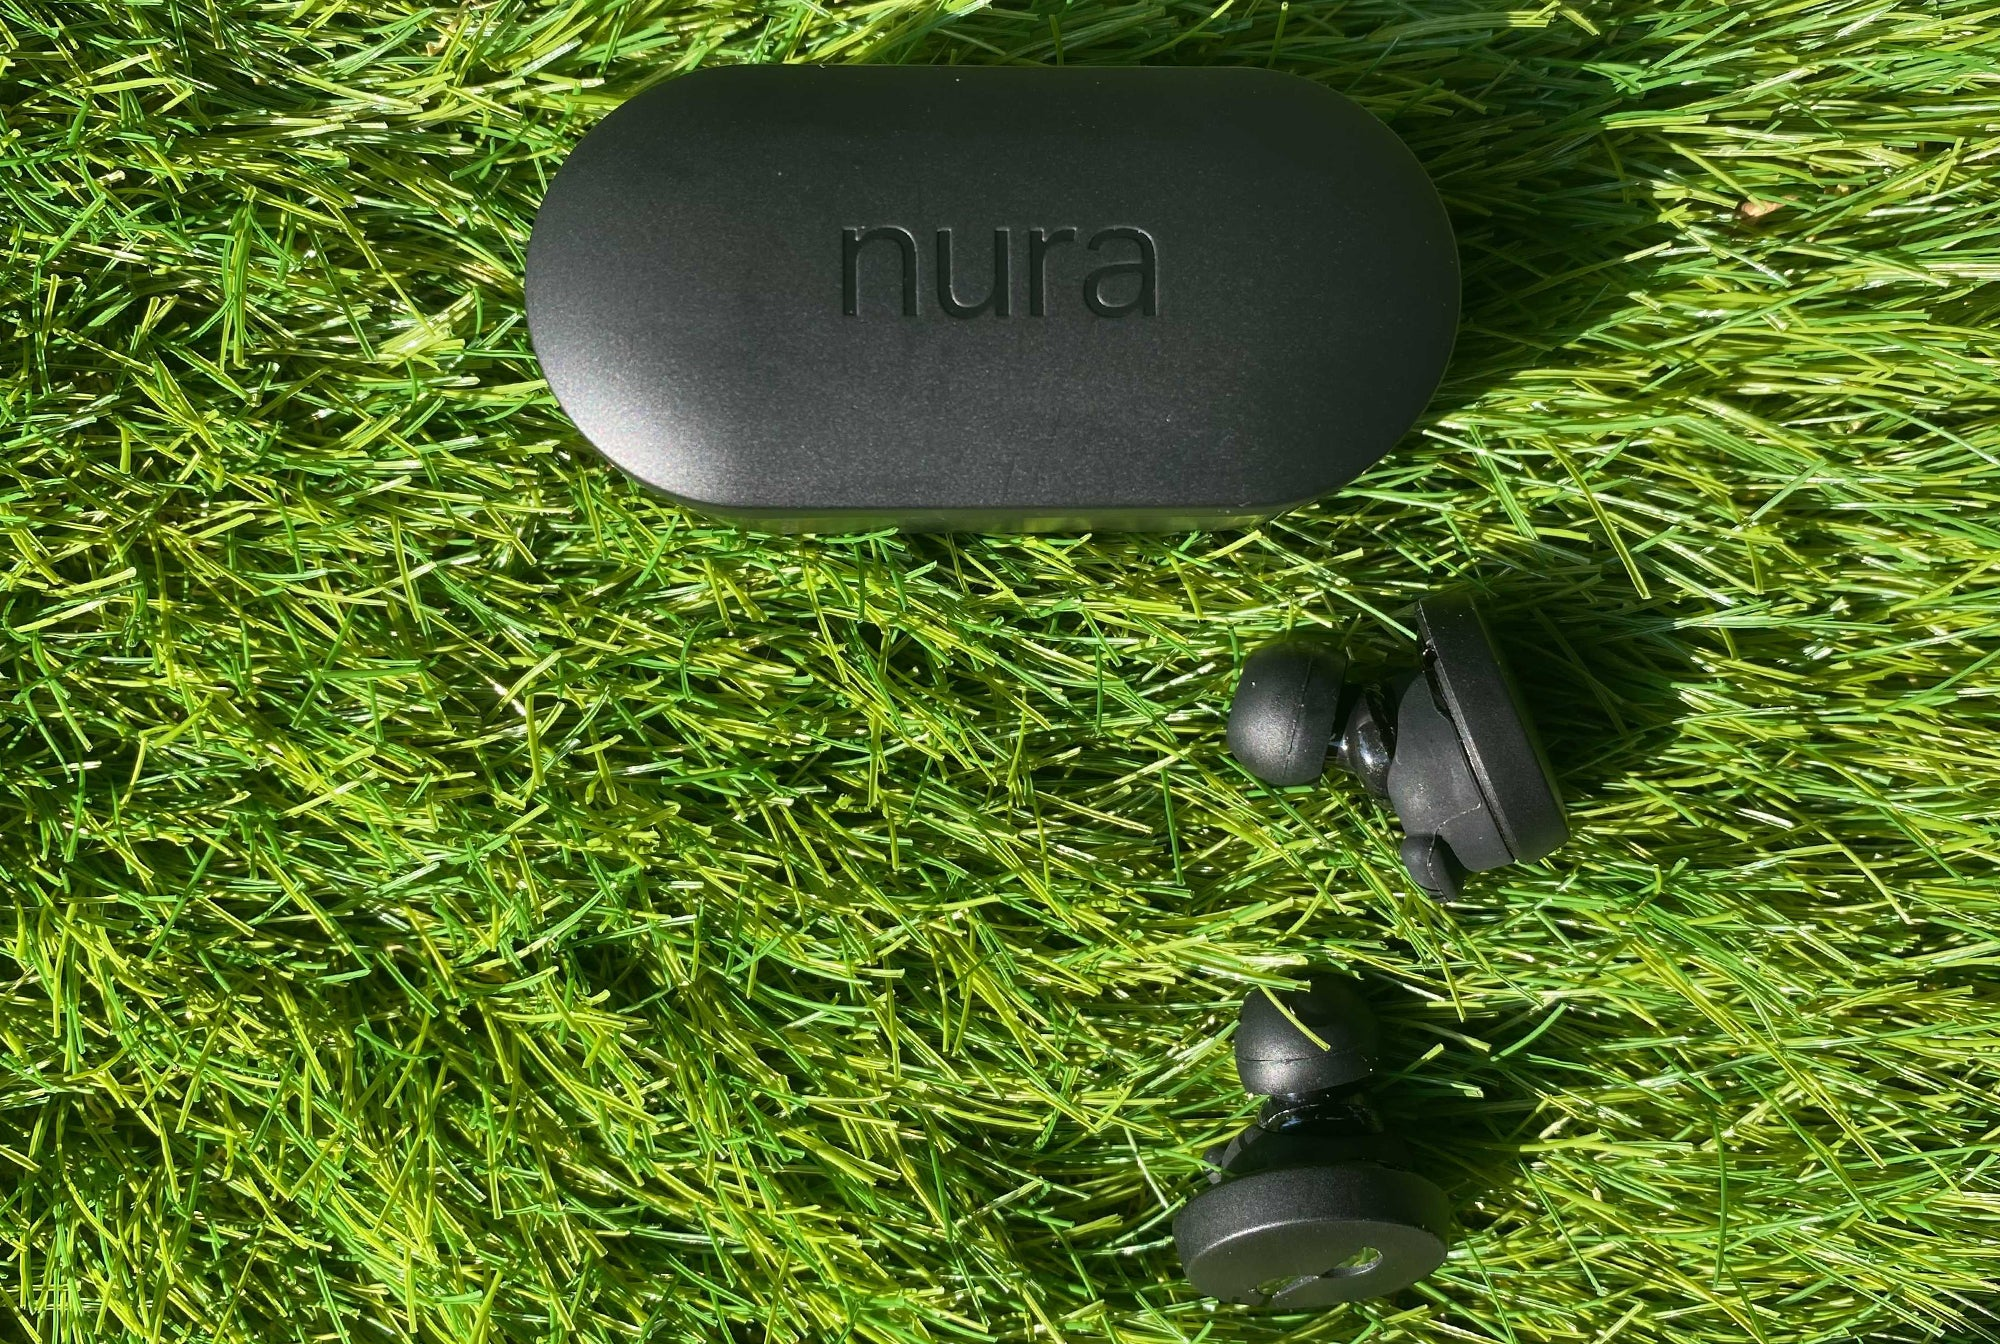 NuraTrue earbuds and case product card